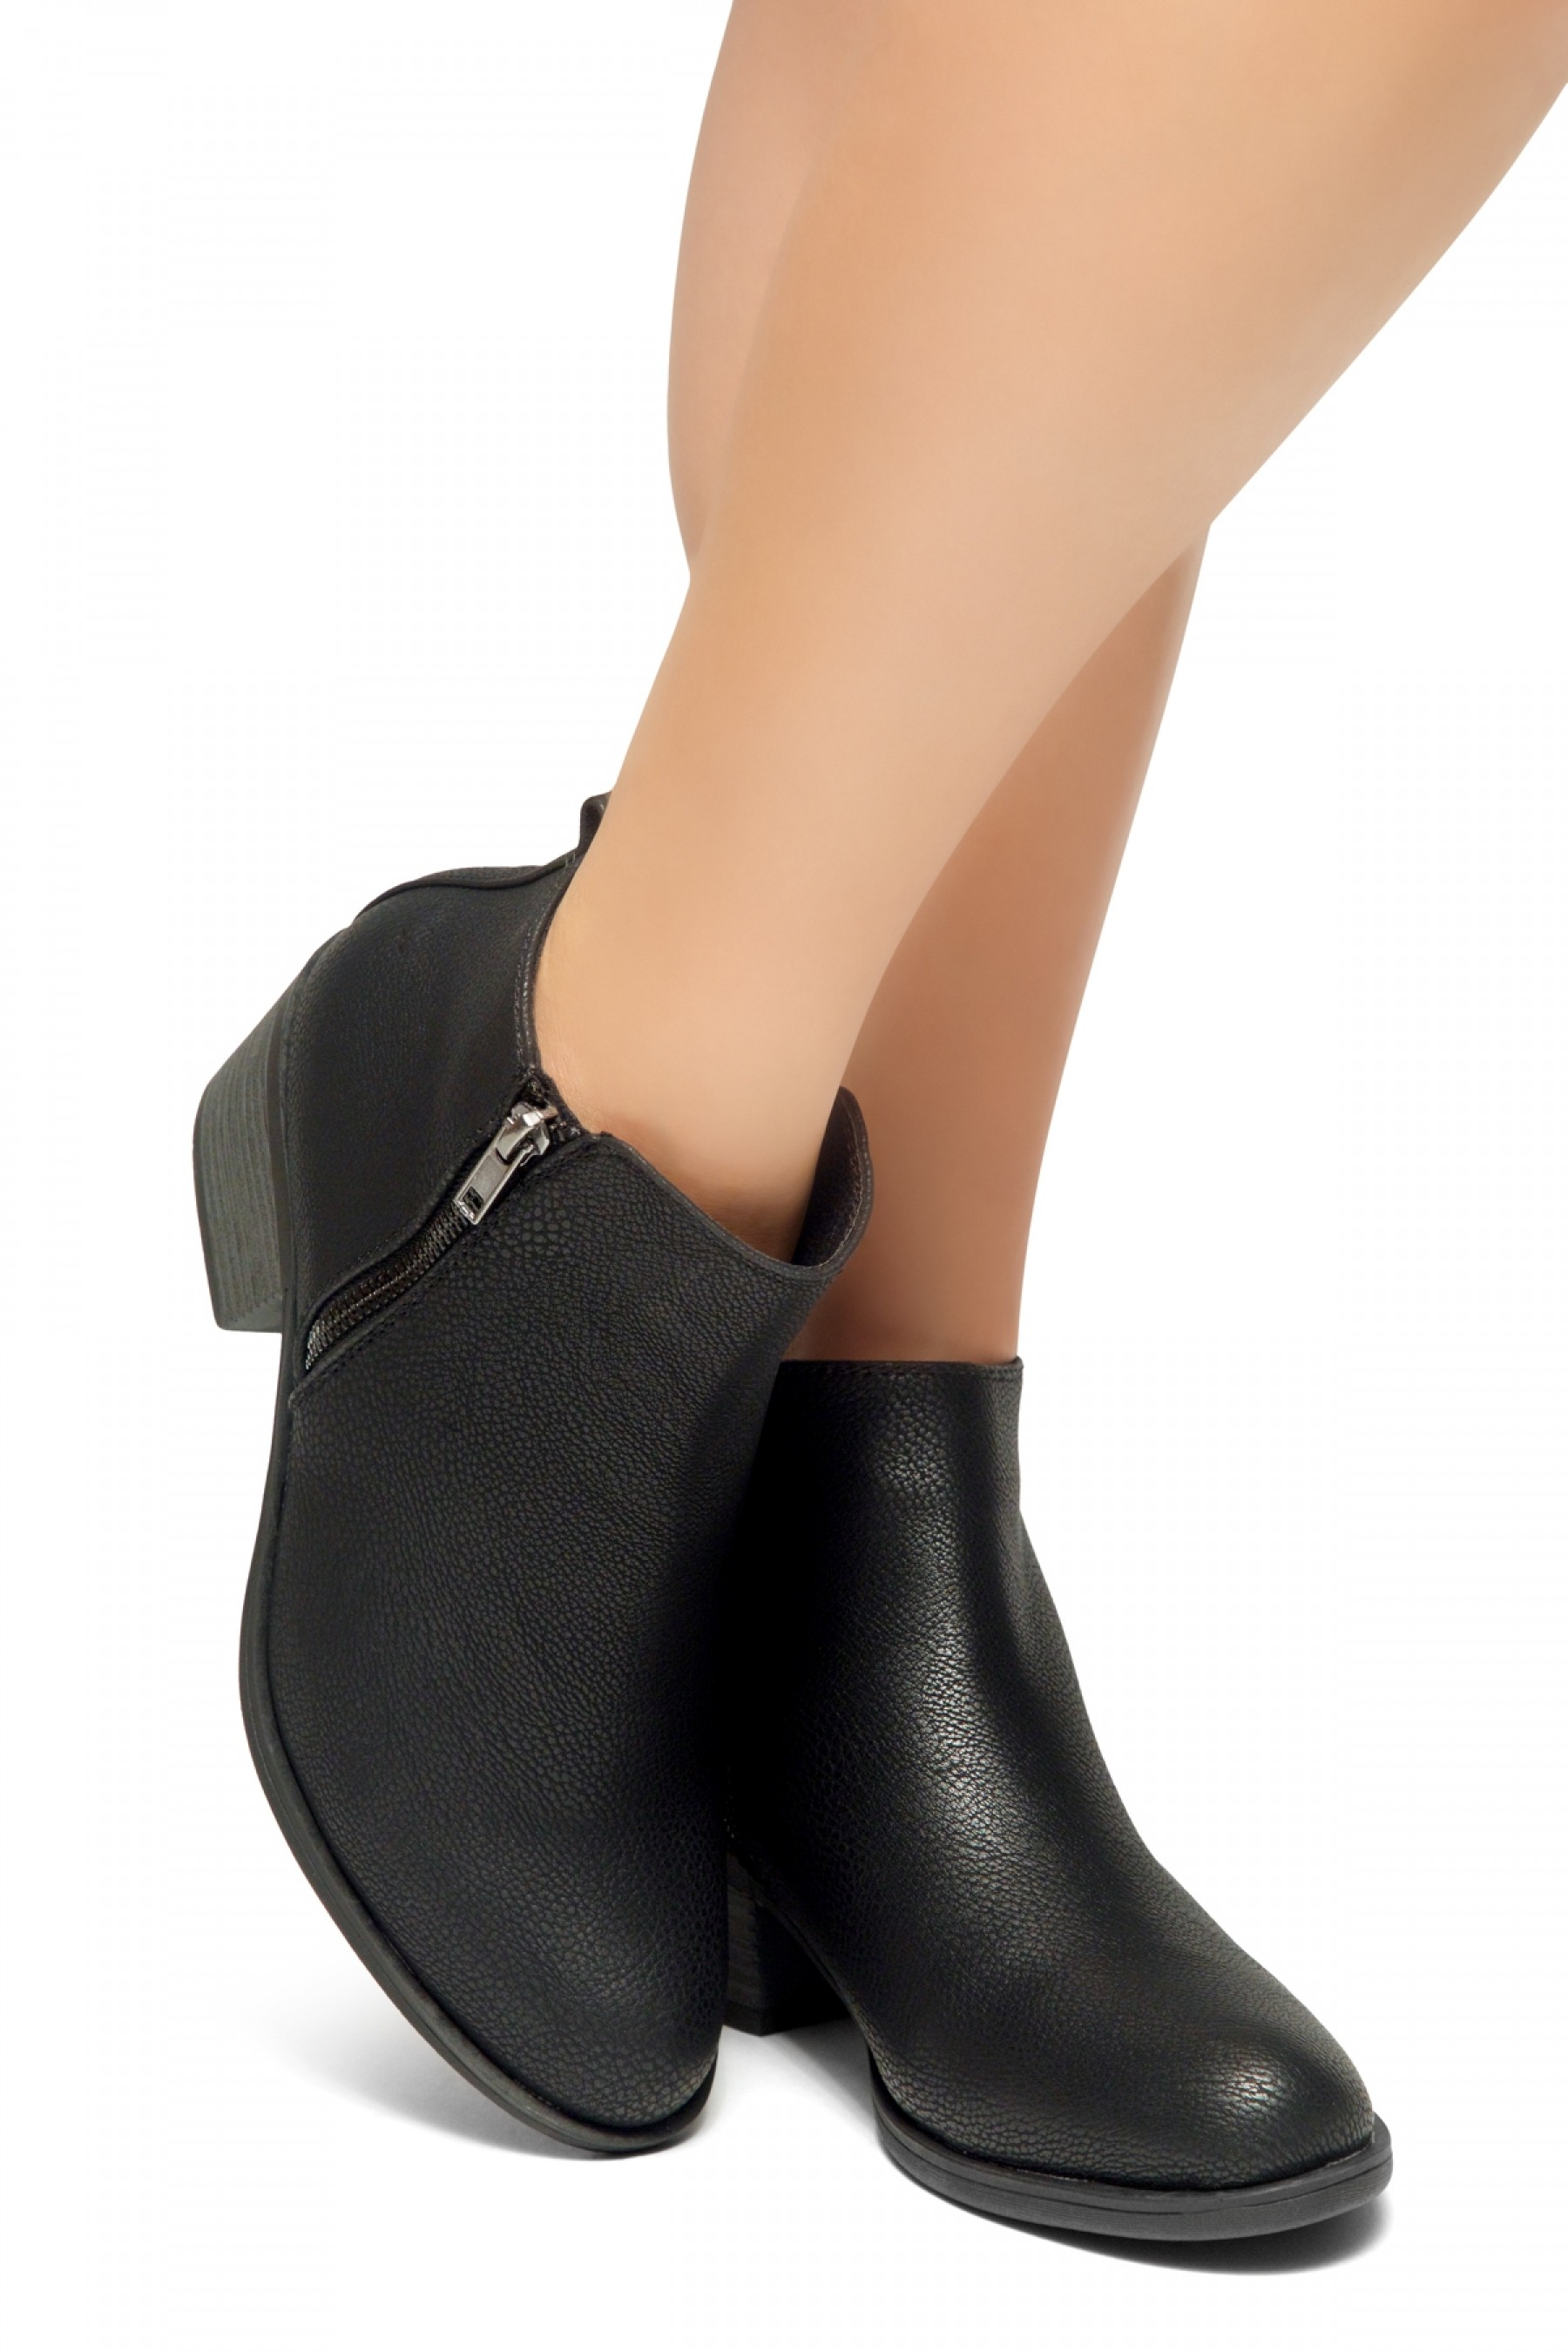 HerStyle Ashlyn Women's Western Ankle Bootie Closed Toe Casual Low Stacked Heel Boots (Black)